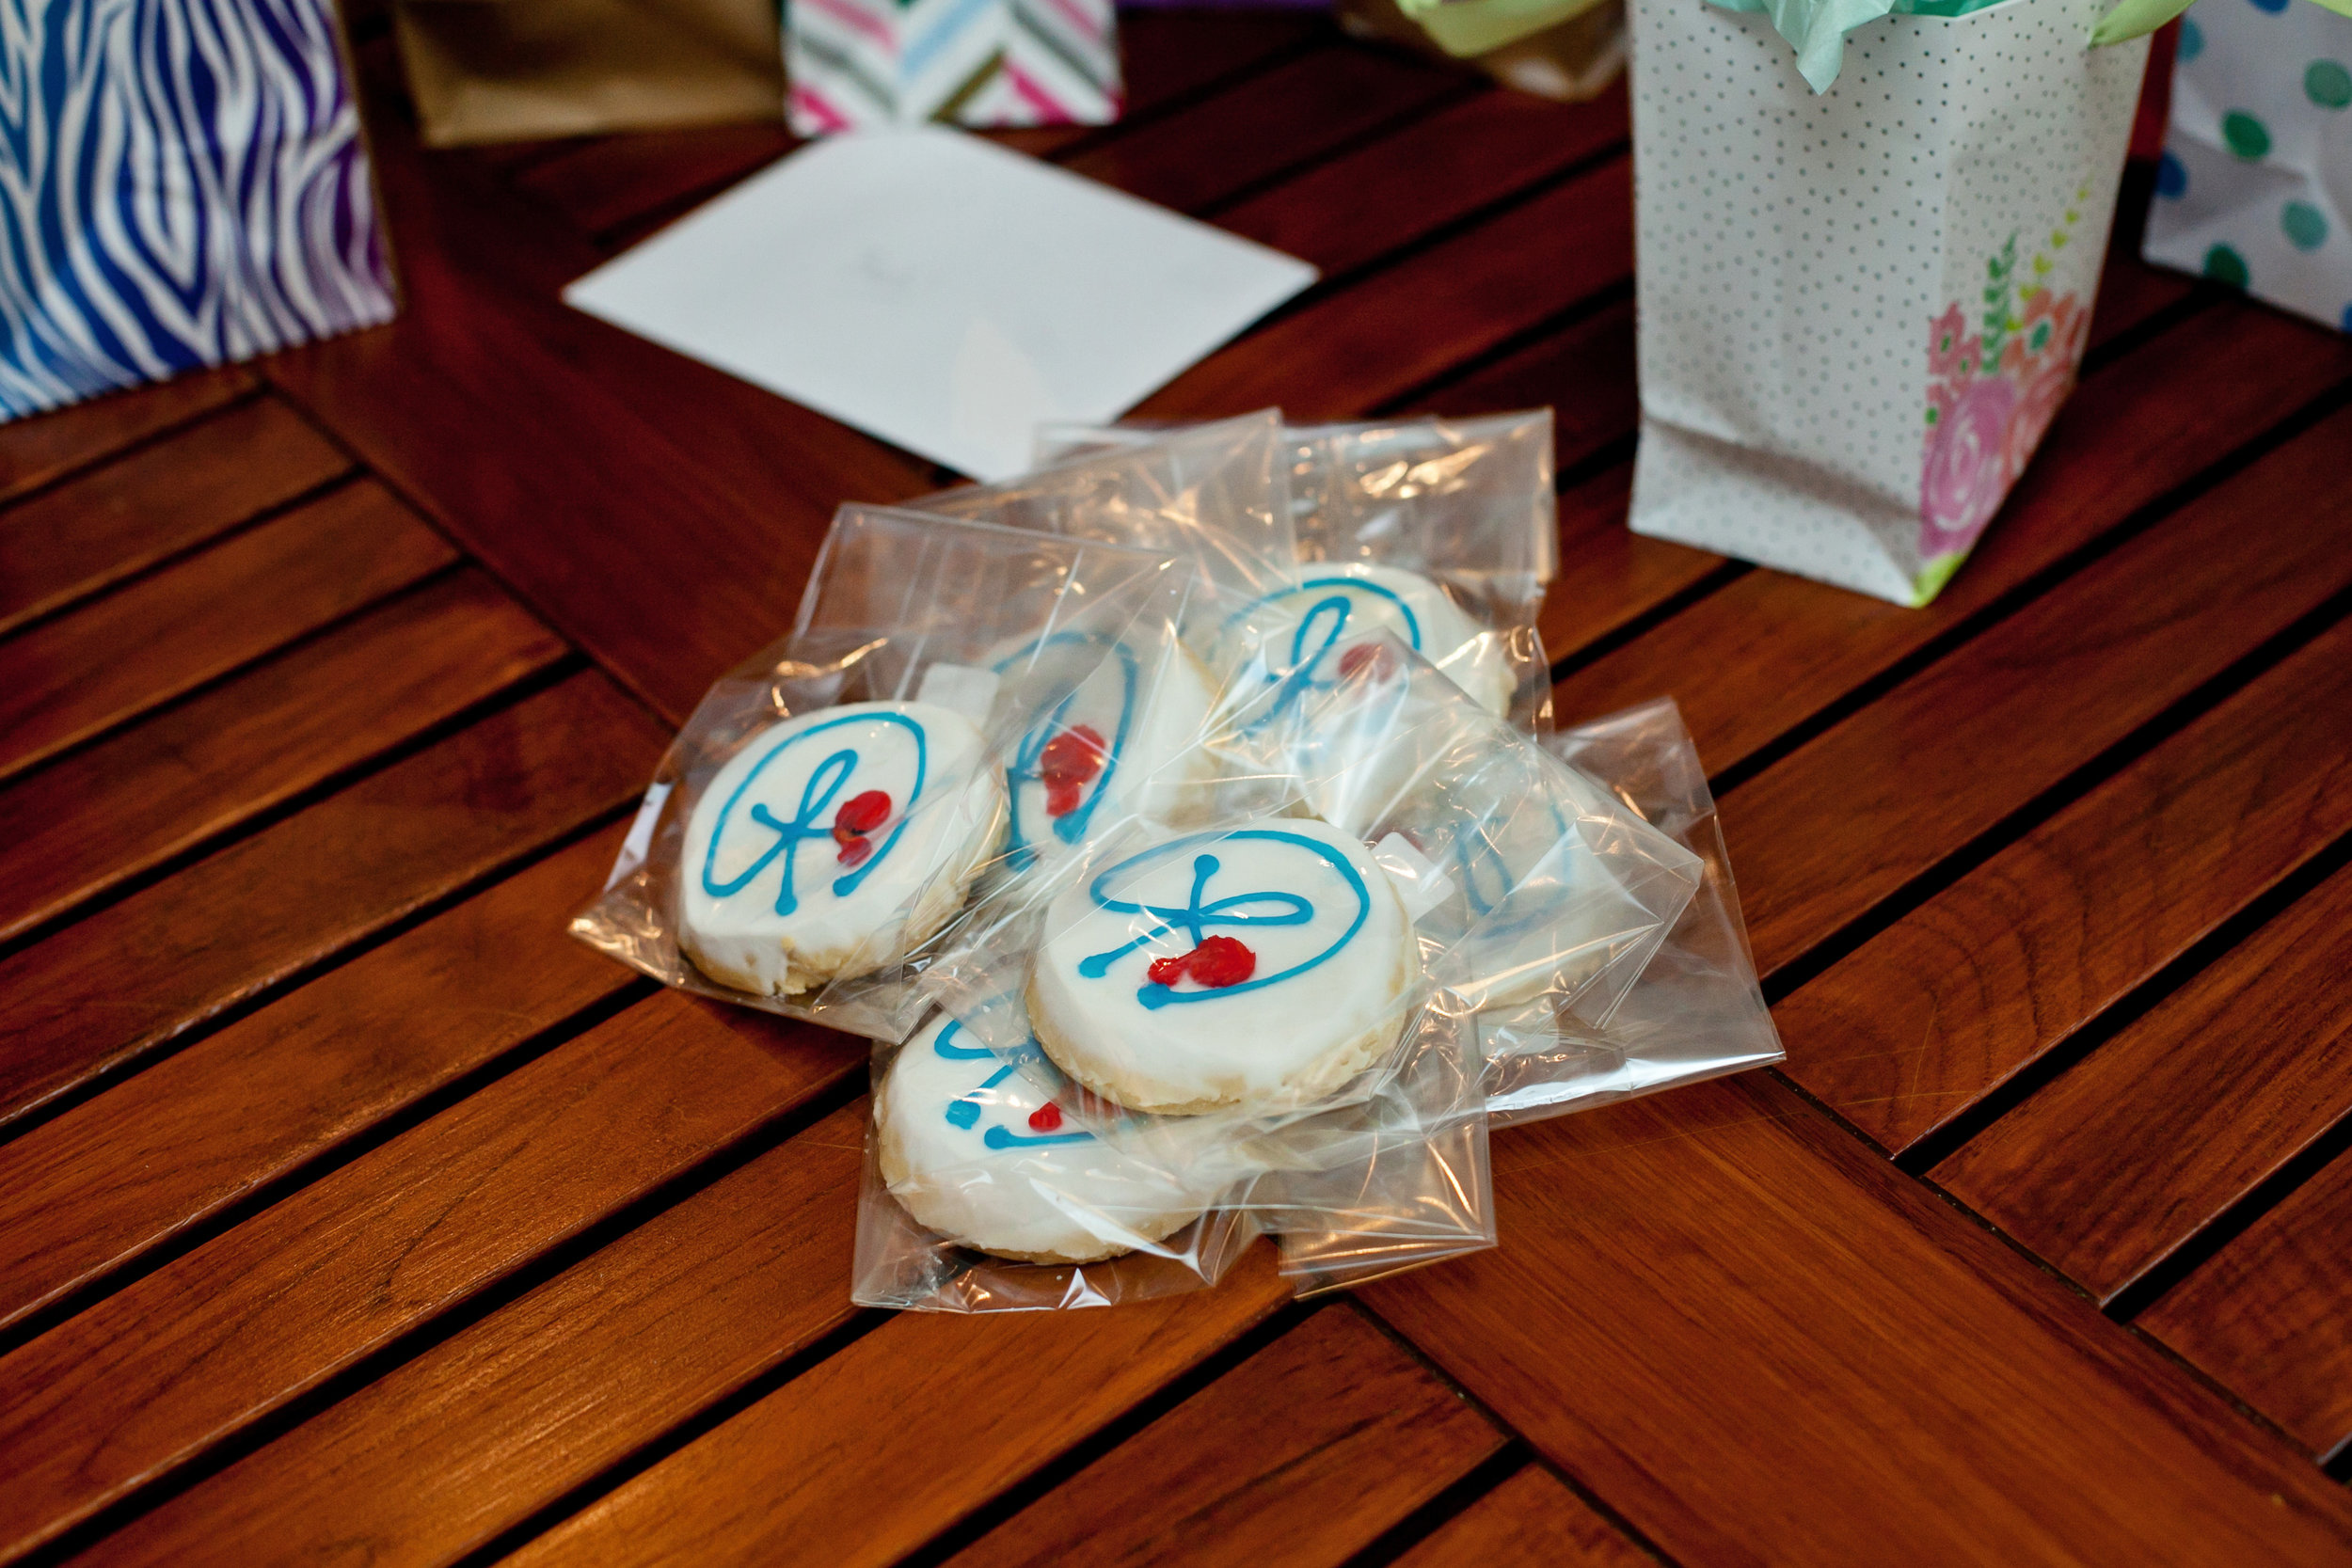 Photo by: Bethany Meister: Photographer. Cookies for my 8/28/18 launch party.